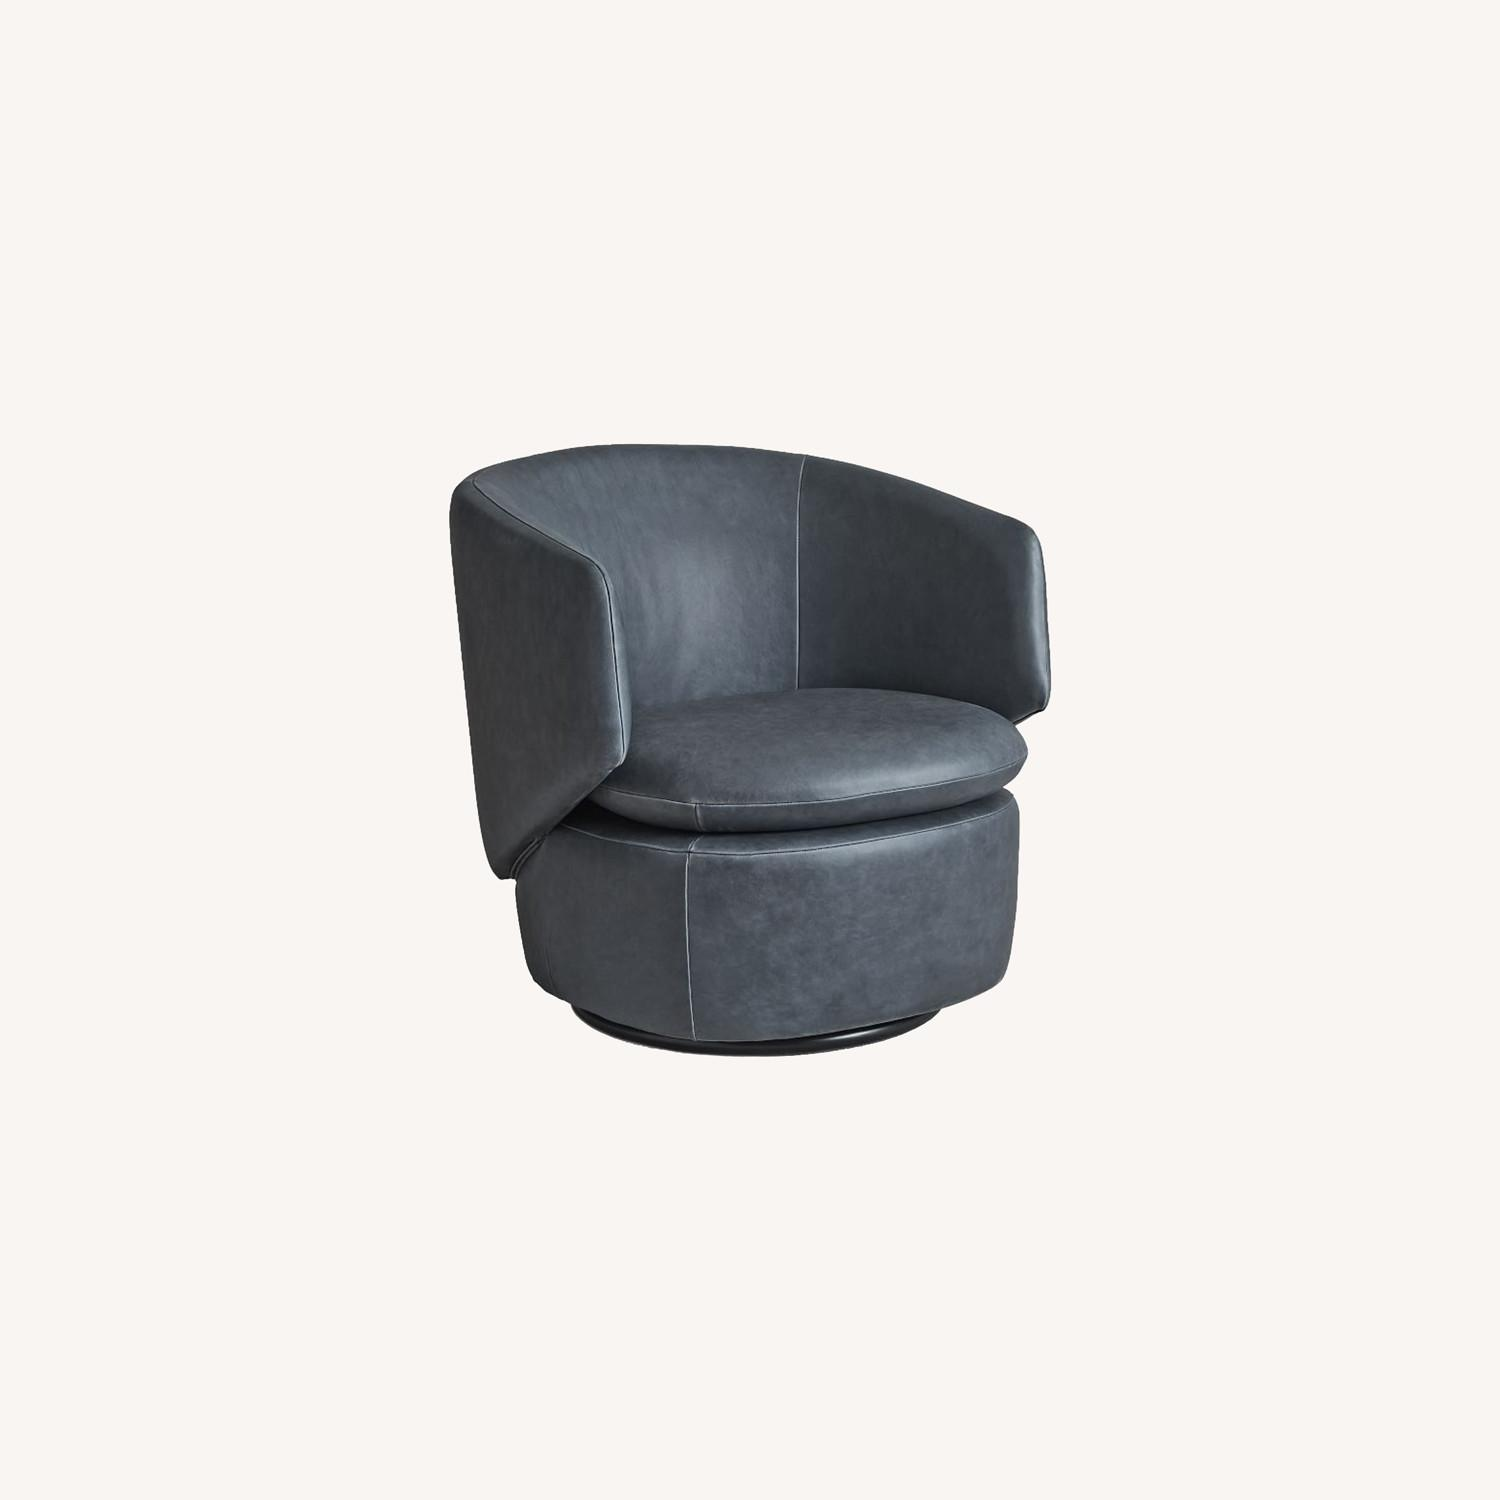 West Elm Crescent Leather Swivel Chair - image-0